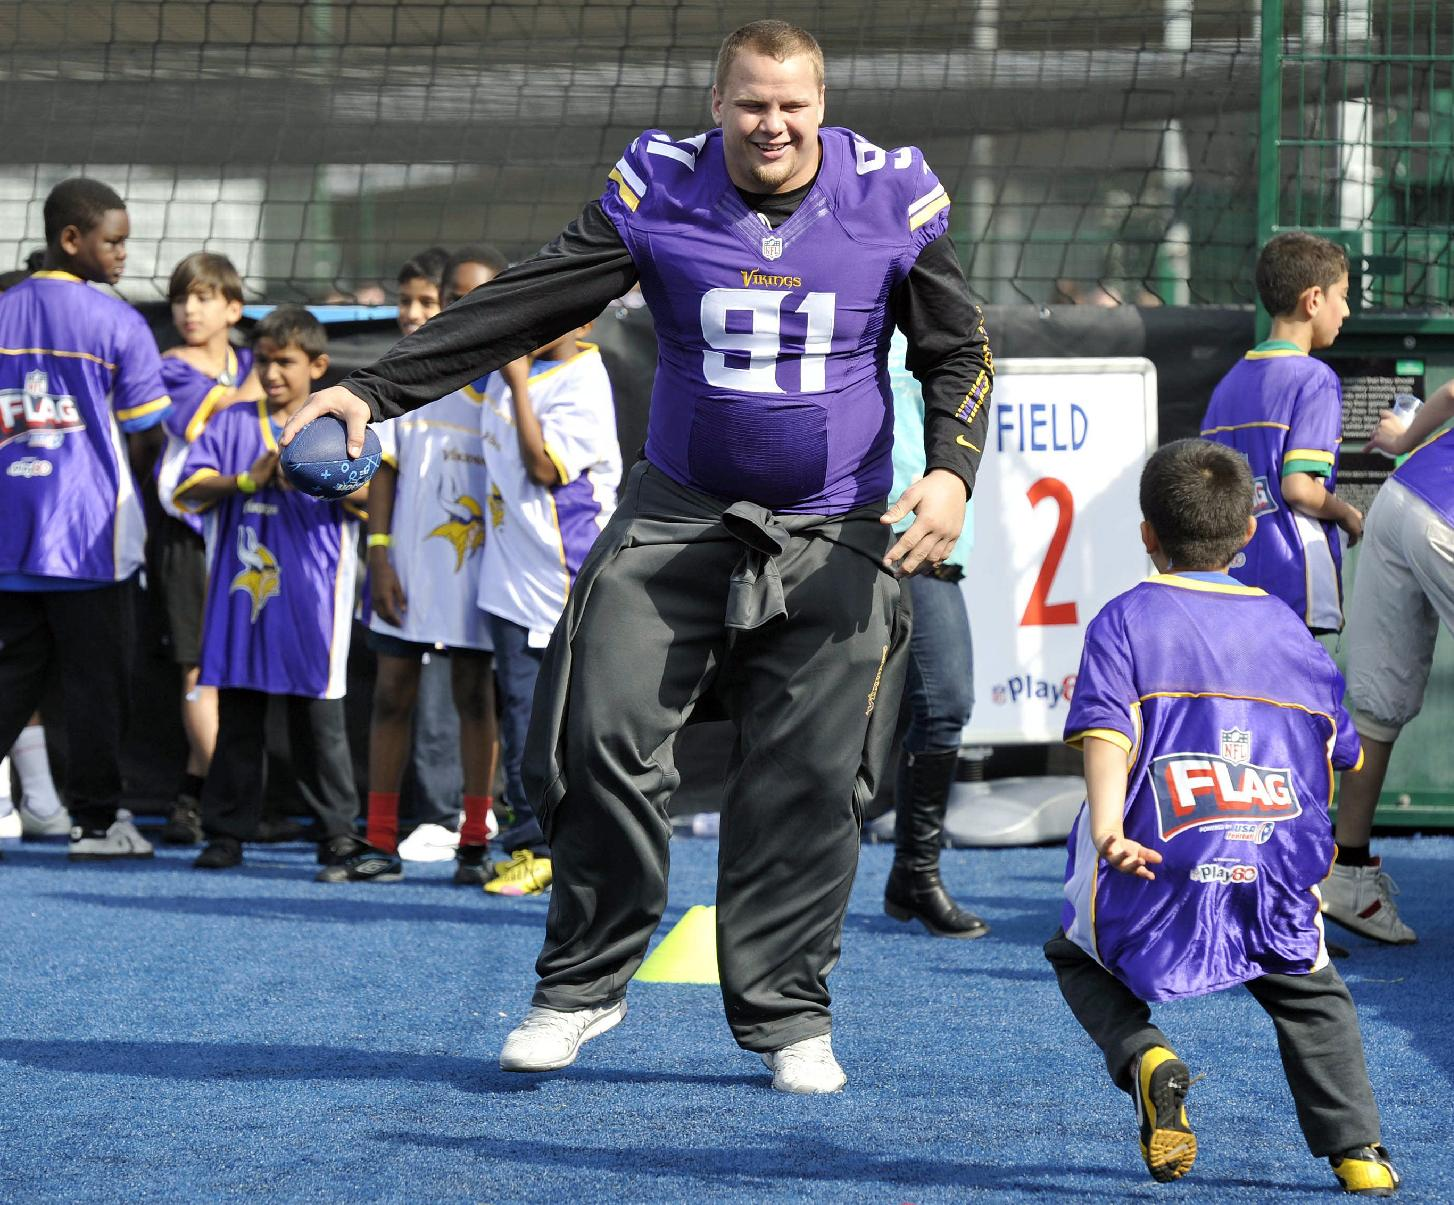 Chase Baker of the Vikings NFL team takes part in a coaching clinic for London children near Wembley Stadium, London, Tuesday Sept. 24, 2013. The Pittsburgh Steelers are to play the Minnesota Vikings in the NFL International Series at Wembley Stadium in London on Sunday, Sept 29